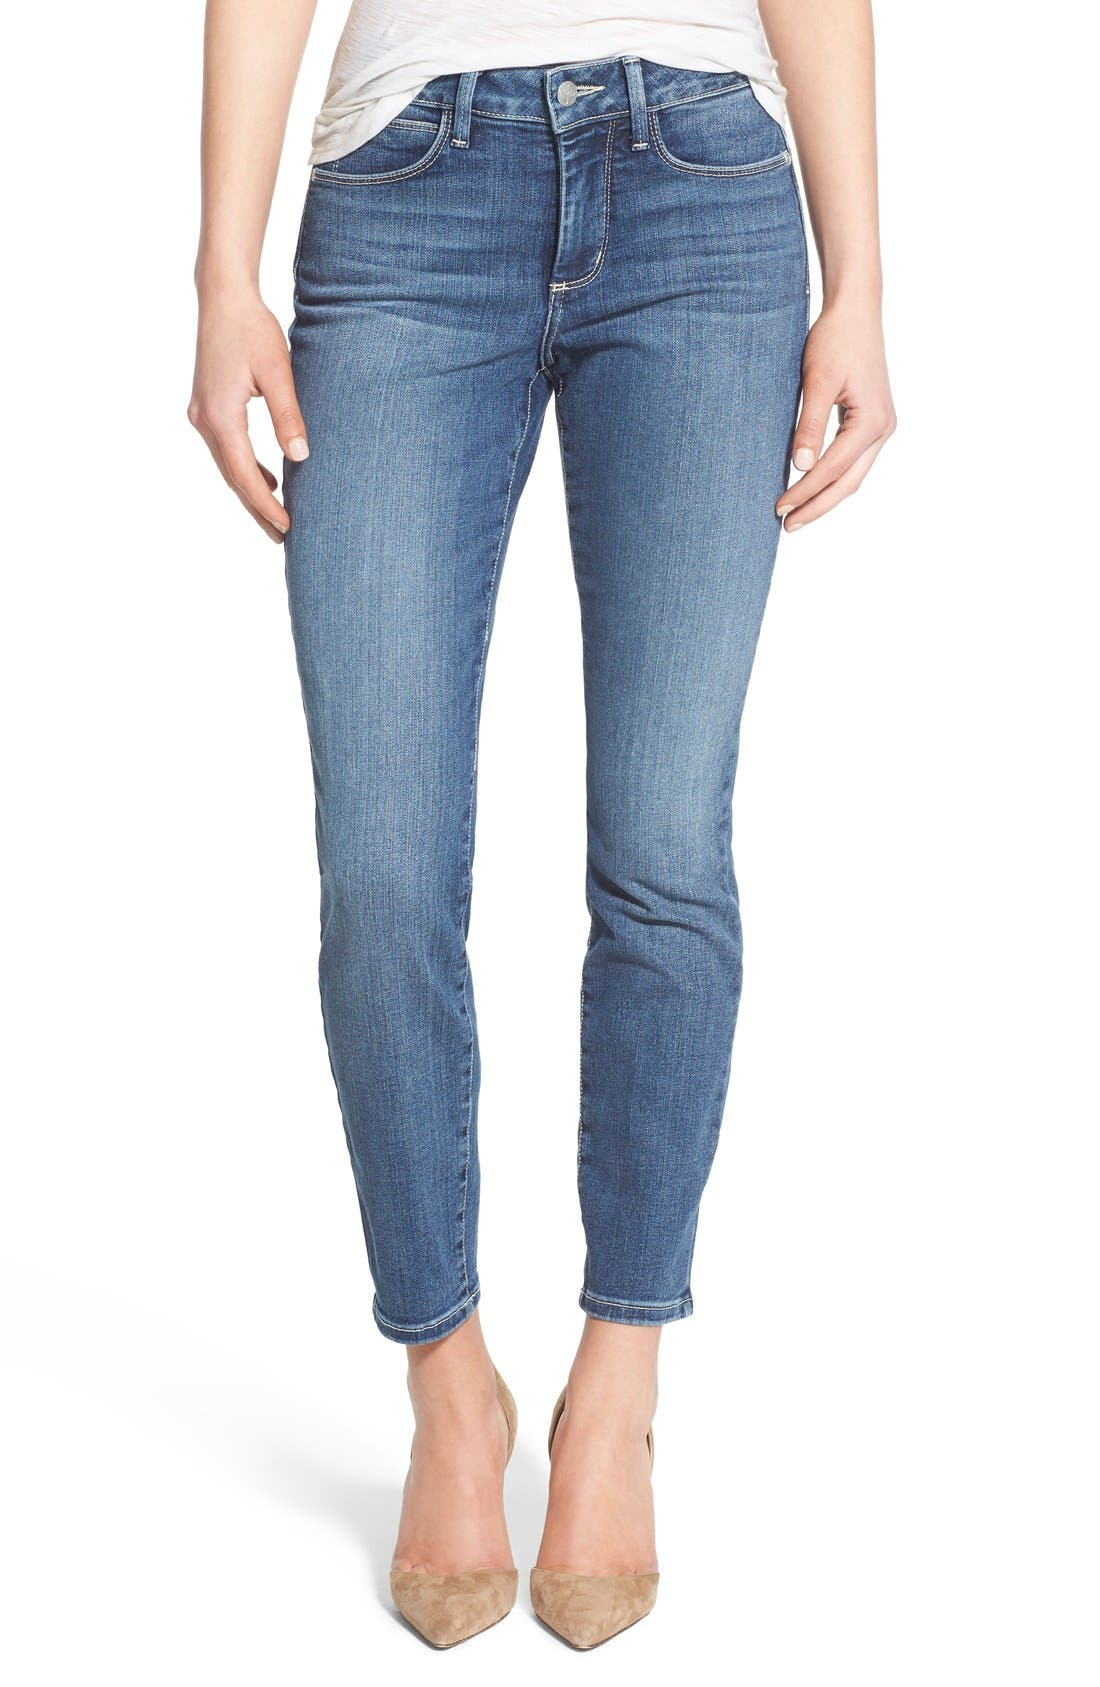 'Clarissa' Stretch Ankle Skinny Jeans,                         Main,                         color, 421